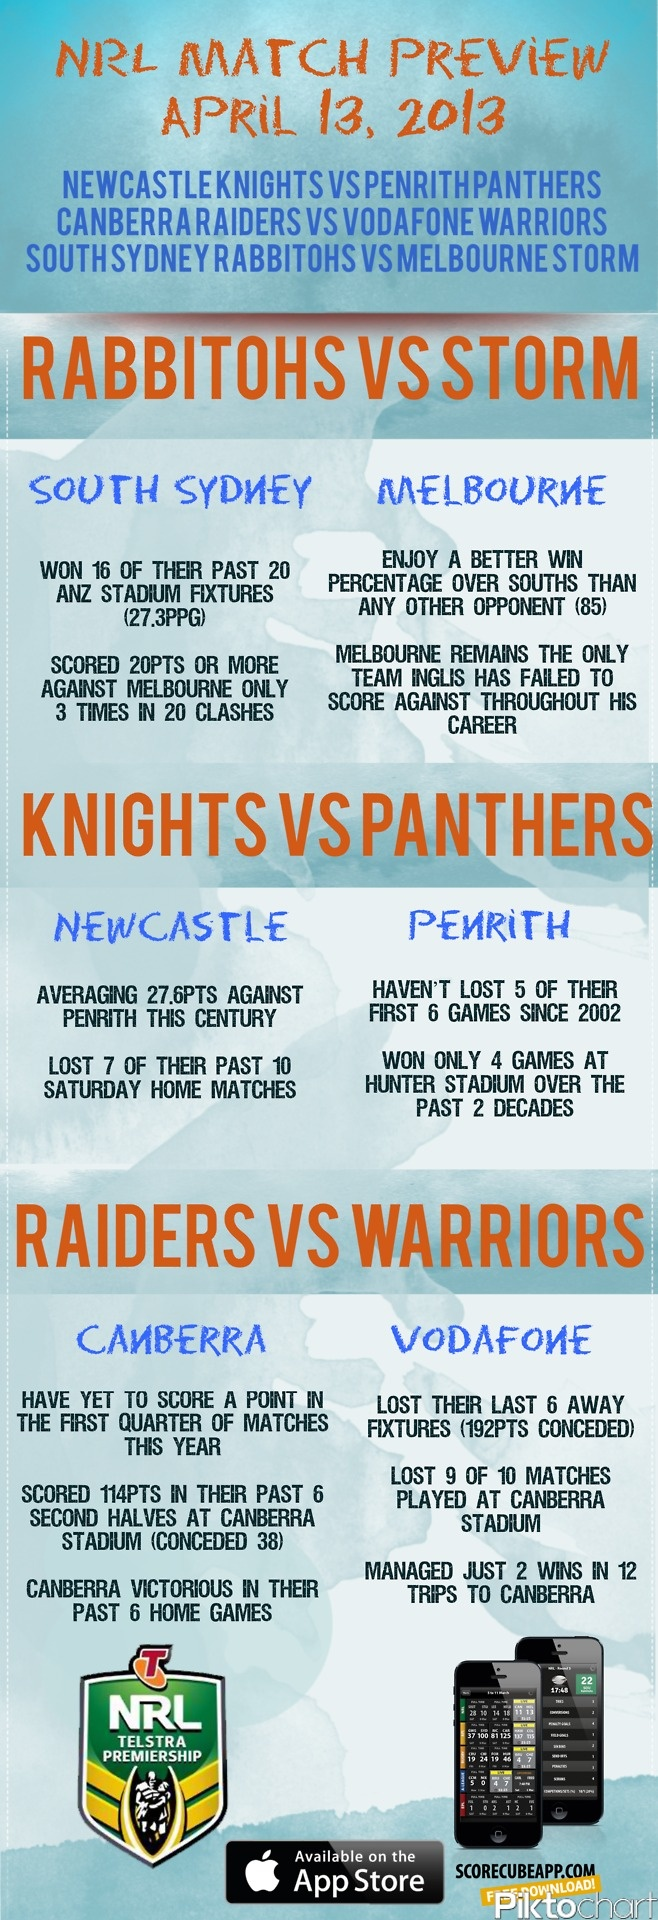 Match preview of the NRL - National Rugby League games today! We've got South Sydney Rabbitohs vs Melbourne Storm, Newcastle Knightsvs Penrith Panthers, Canberra Raiders vs Vodafone Warriors. Check out how they stack-up against each other.Download the ScoreCube app to be updated on the latest scores, stats and local schedule of your favorite NRL team. http://scorecubeapp.com/  Download the app here:  itunes download link  Follow us on Twitter: @ScoreCube App  We are also on Facebook…